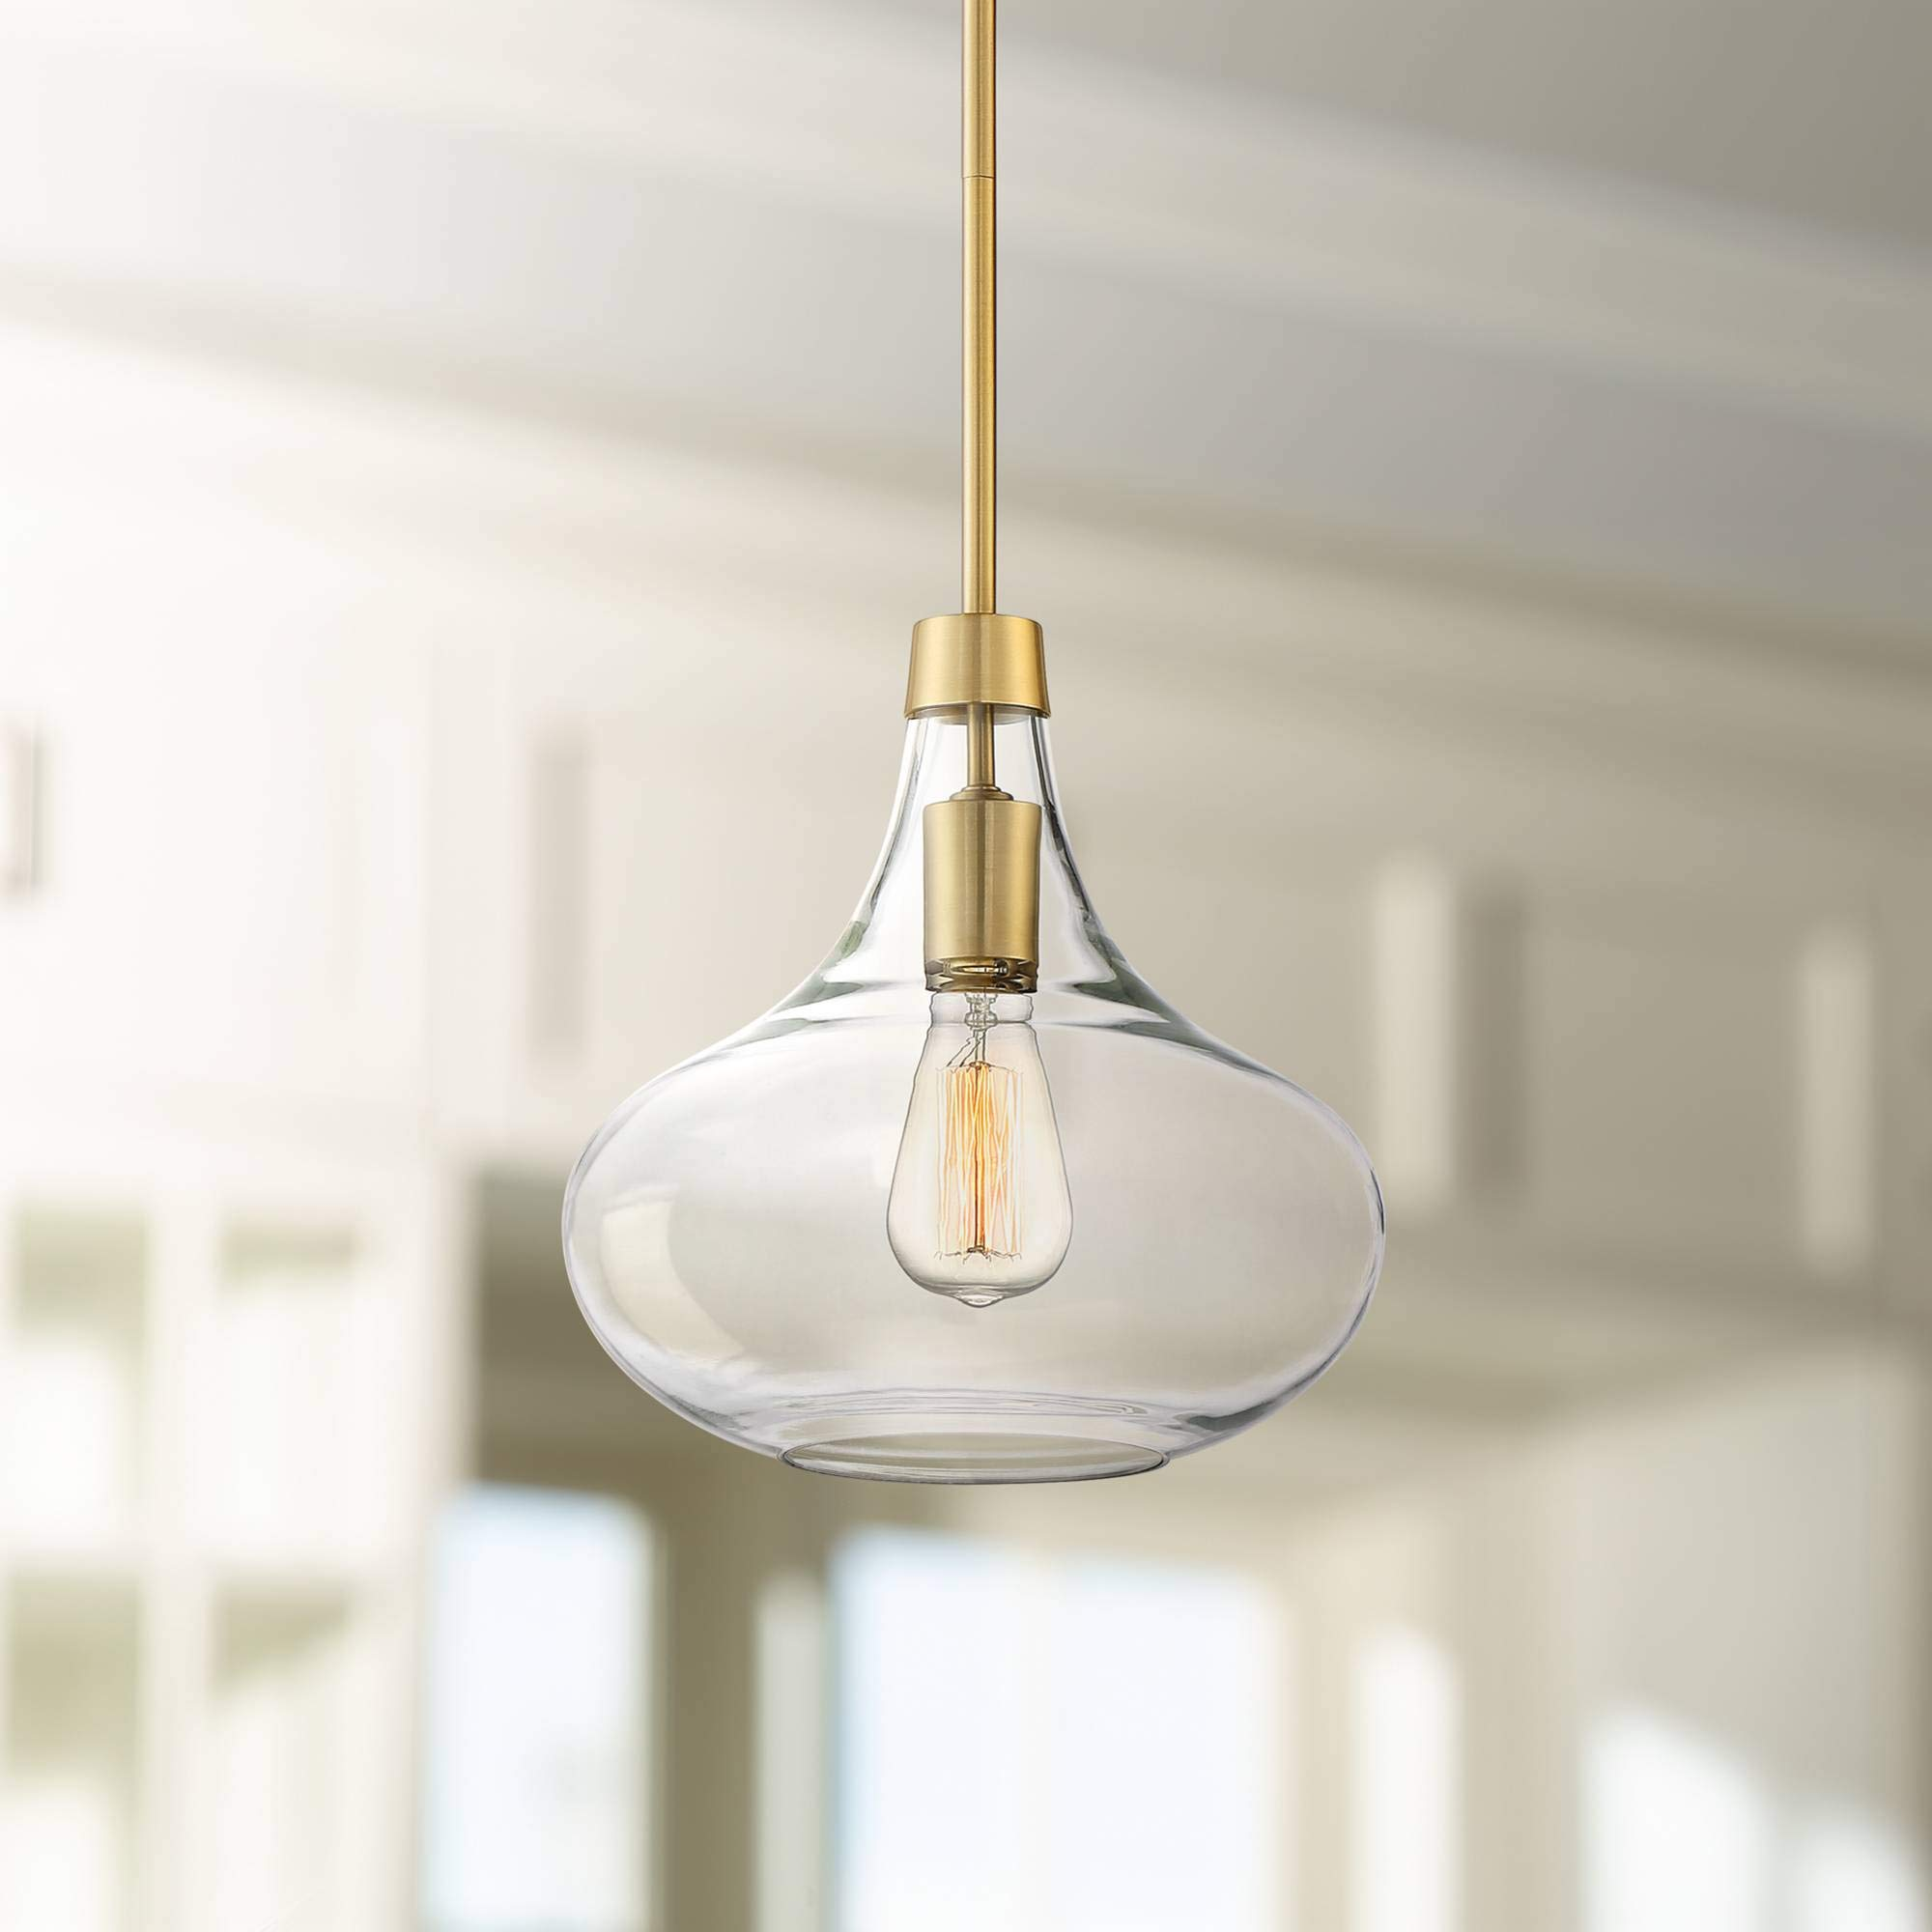 Possini Euro Asni 11'' Wide Warm Antique Brass Mini Pendant - Possini Euro Design